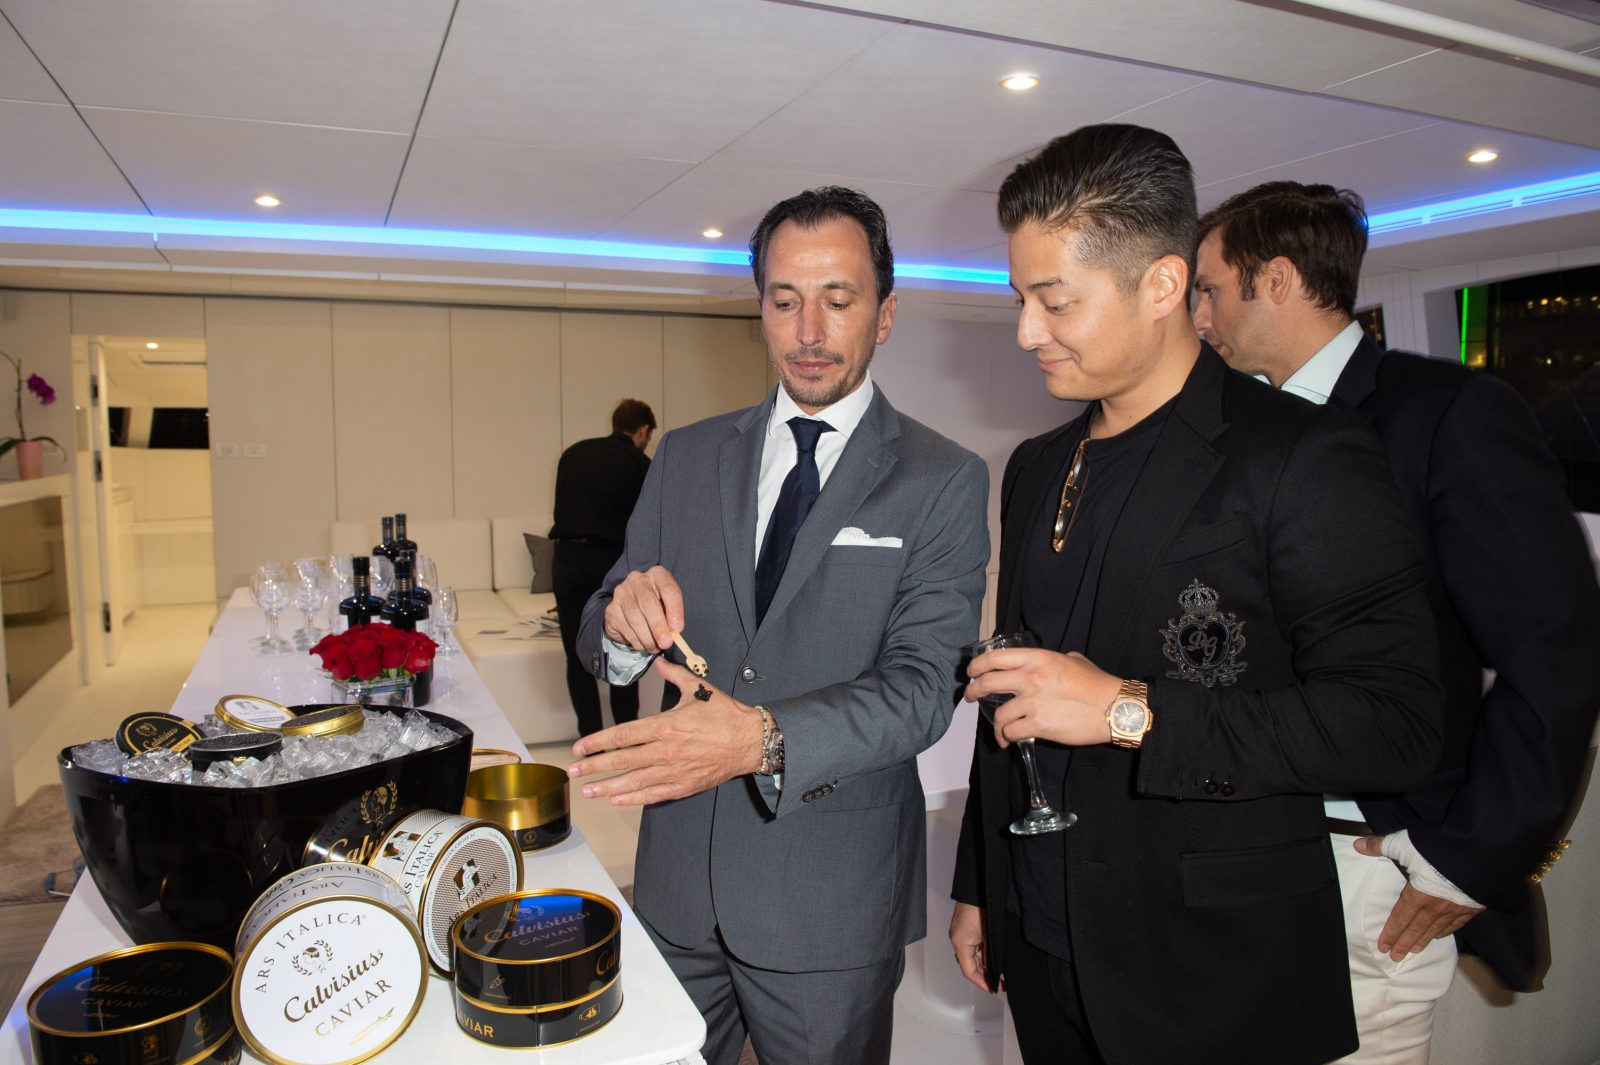 Michael Pulchino trying Calvisius Caviar